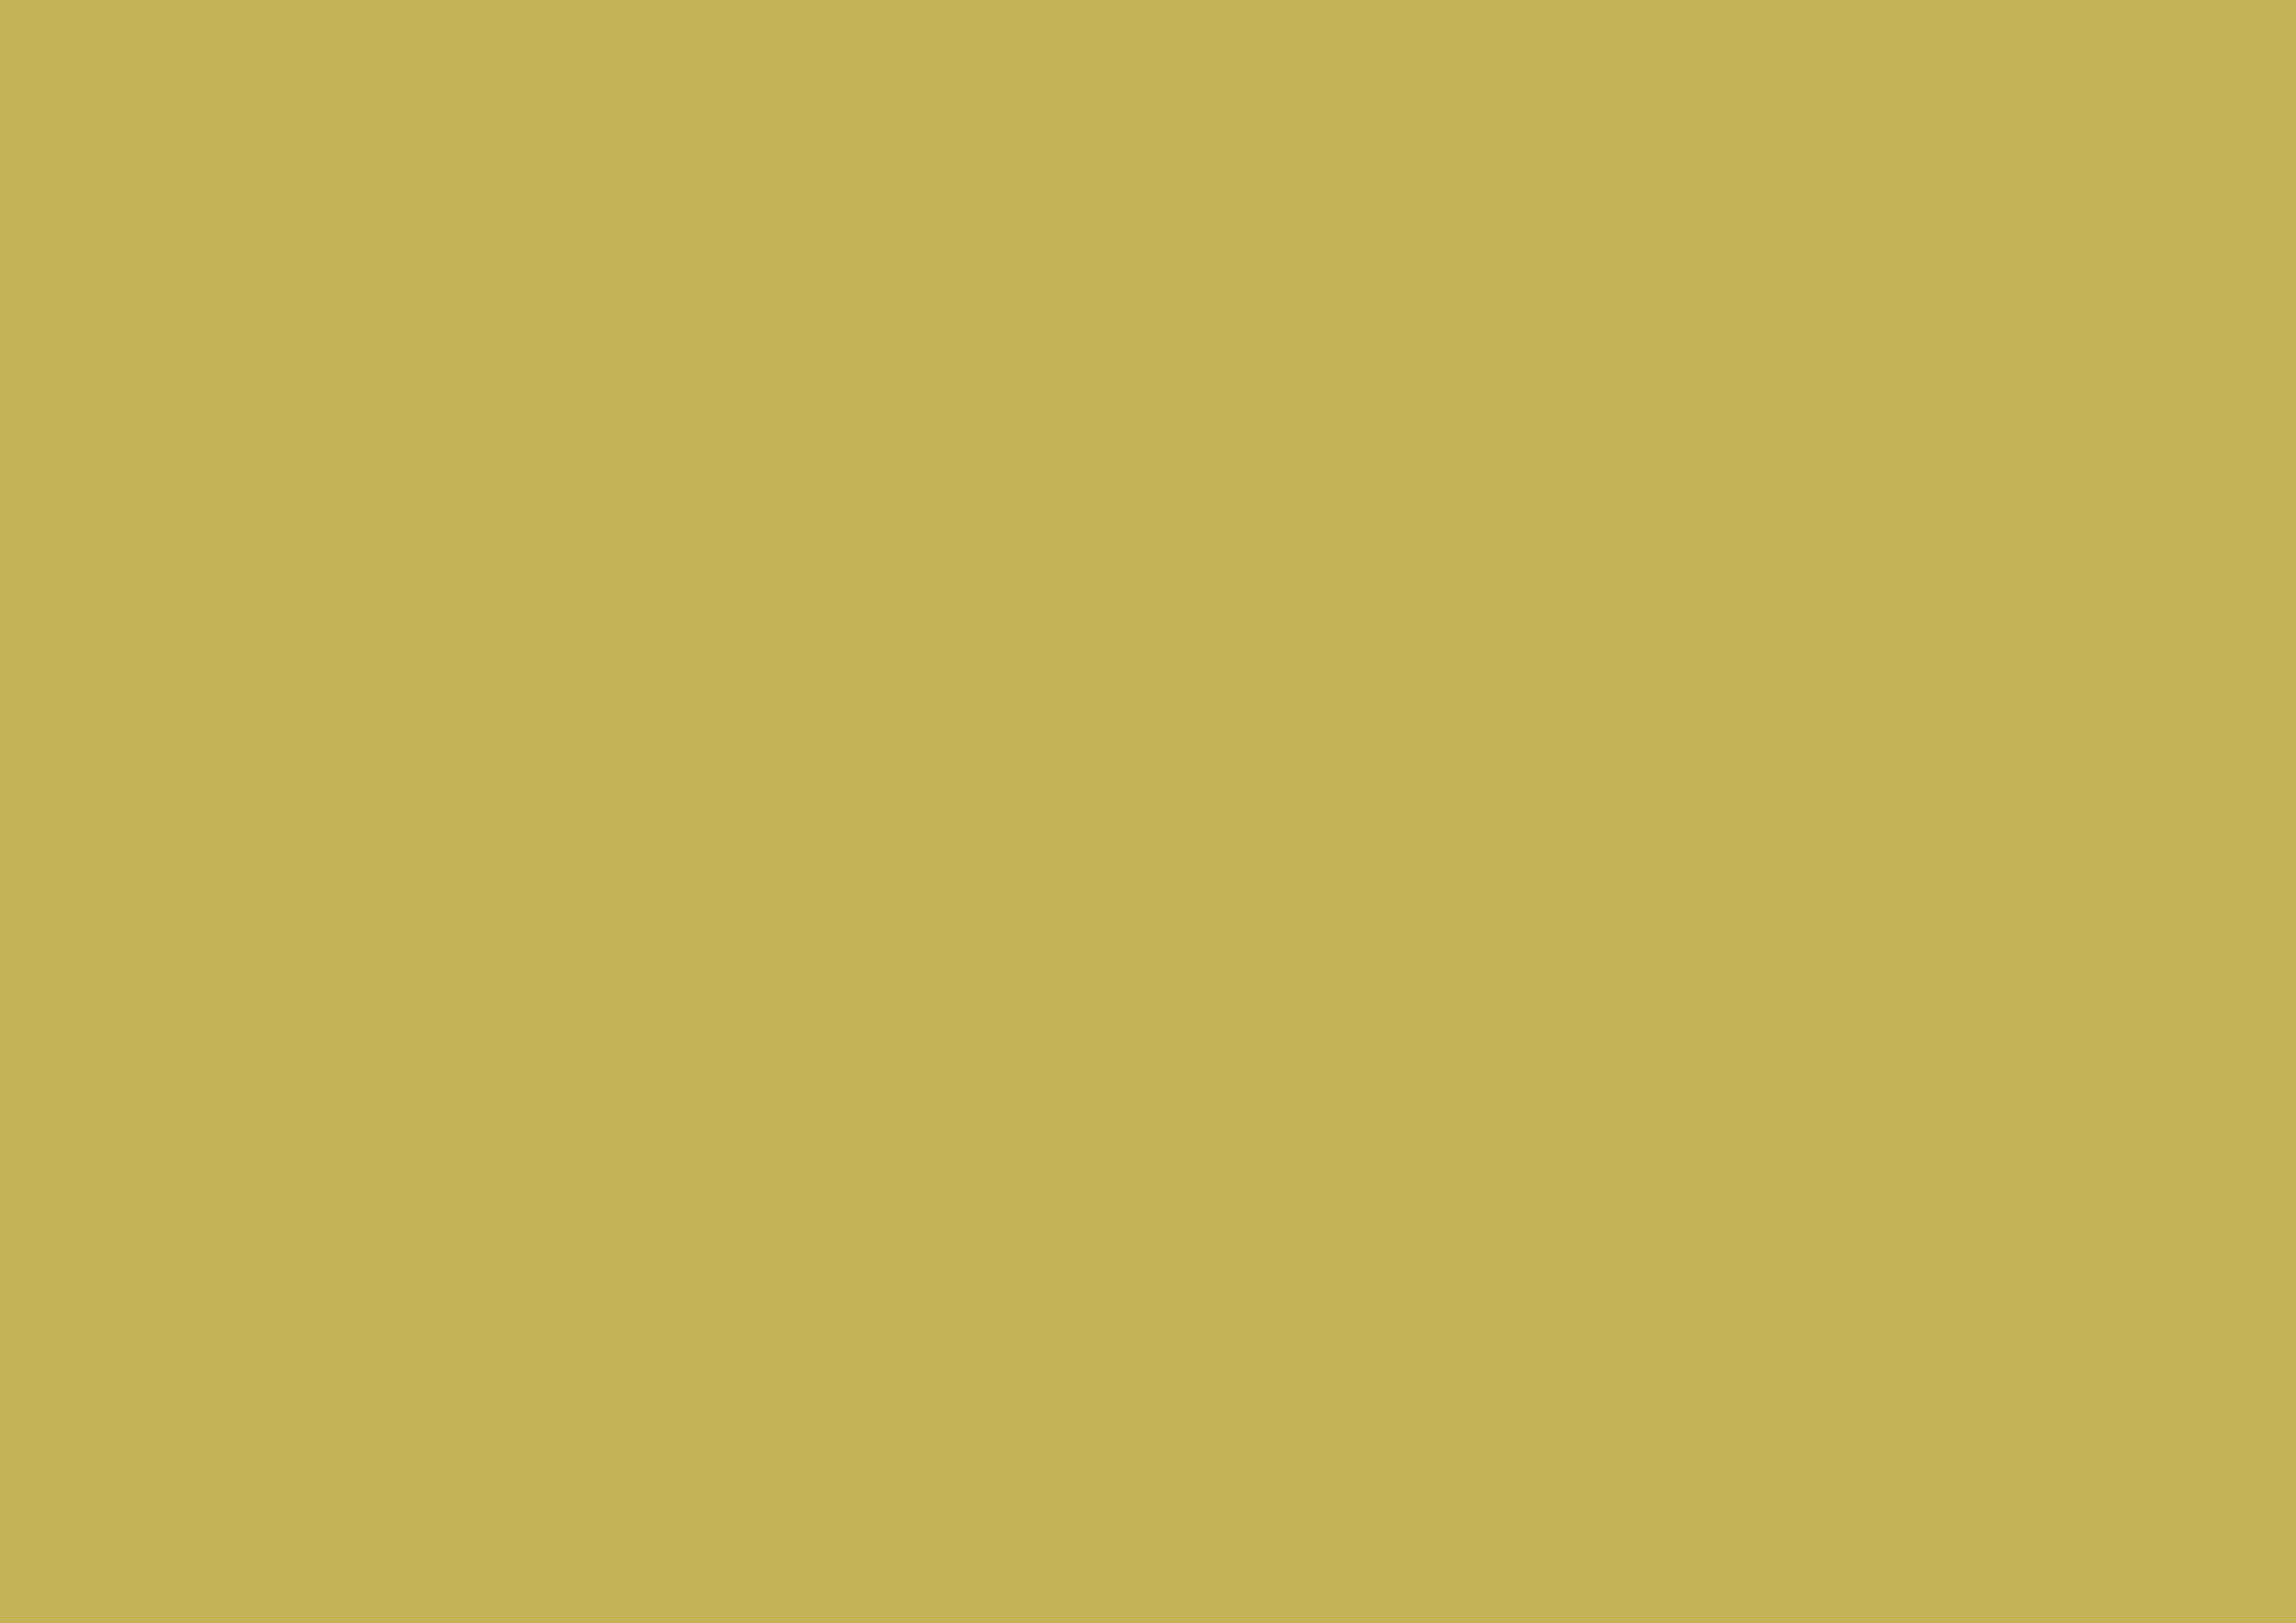 3508x2480 Vegas Gold Solid Color Background